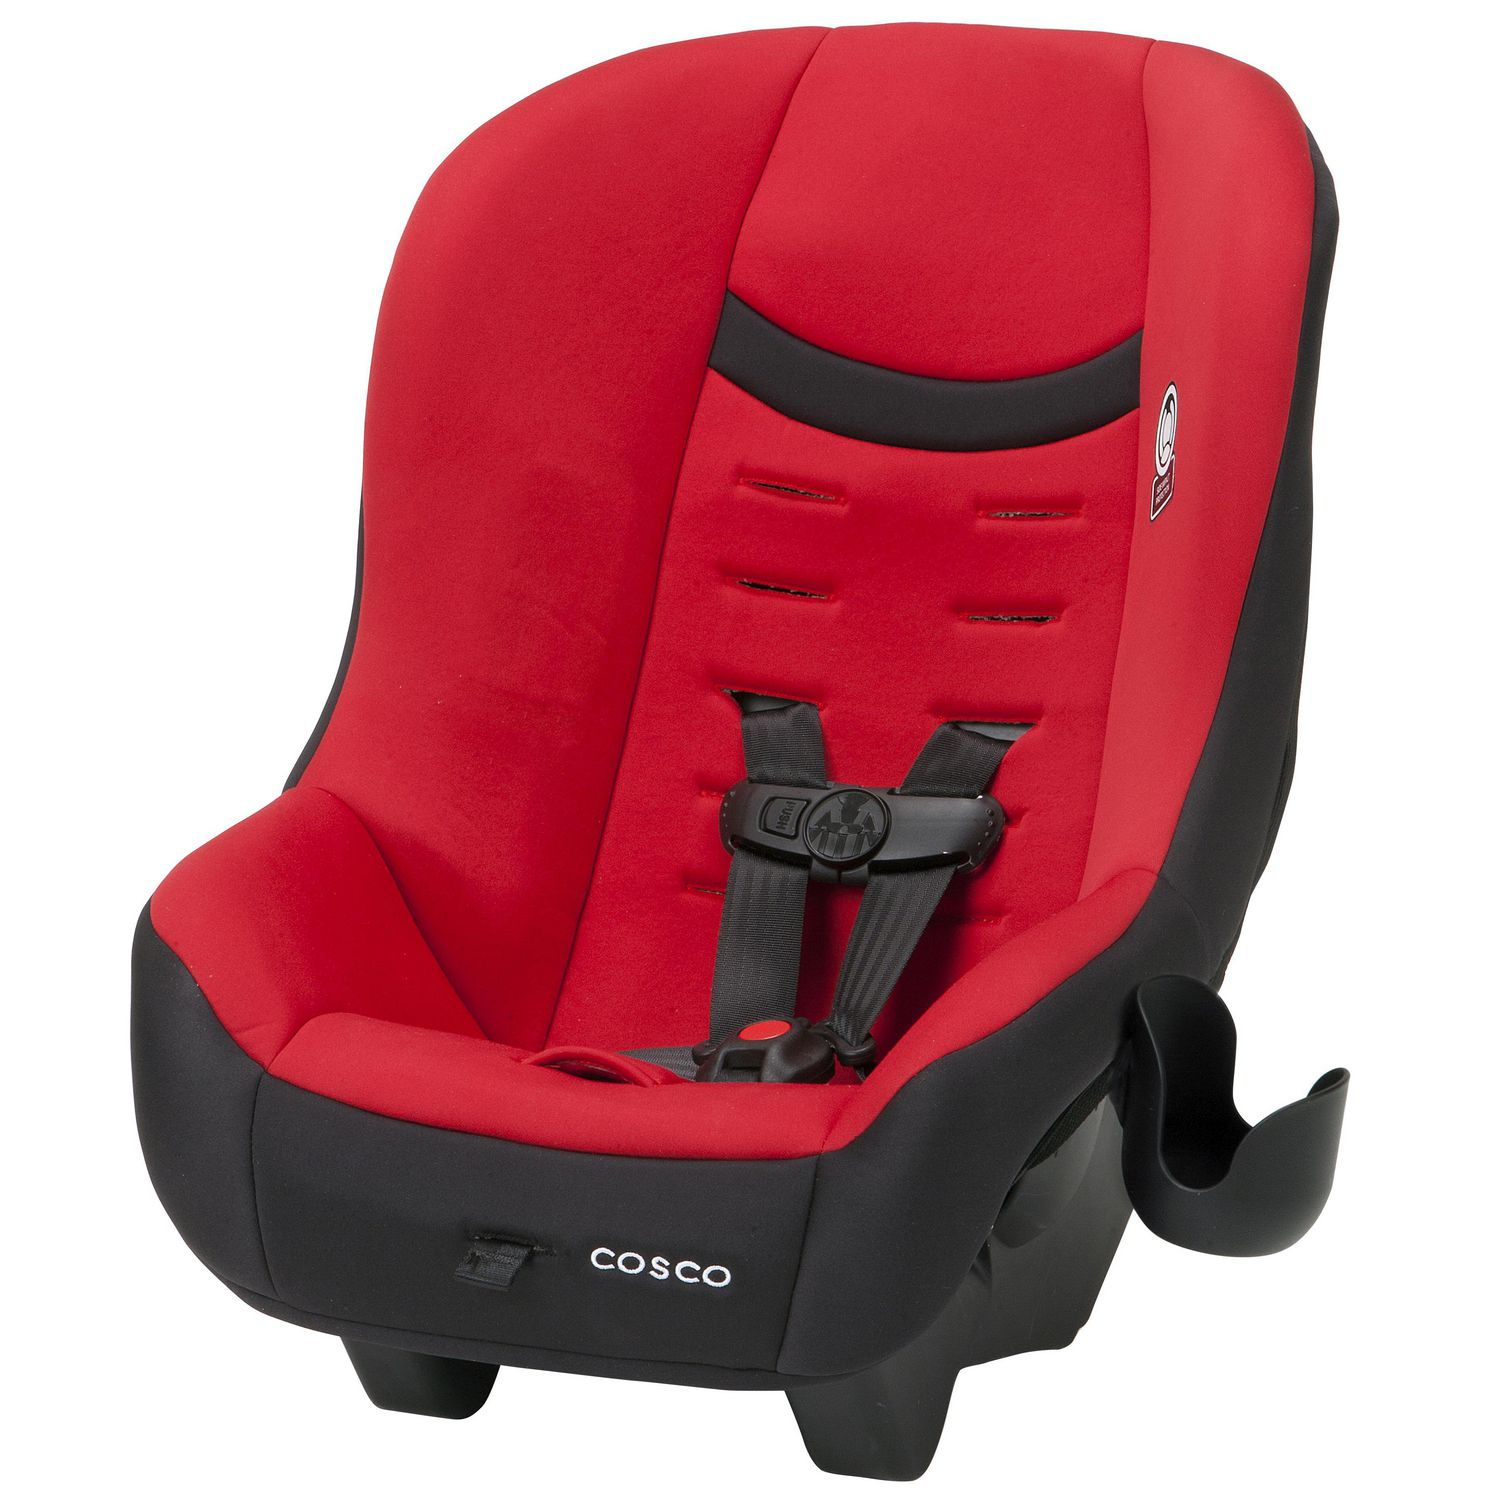 Walmart Travel Car Seat Bag